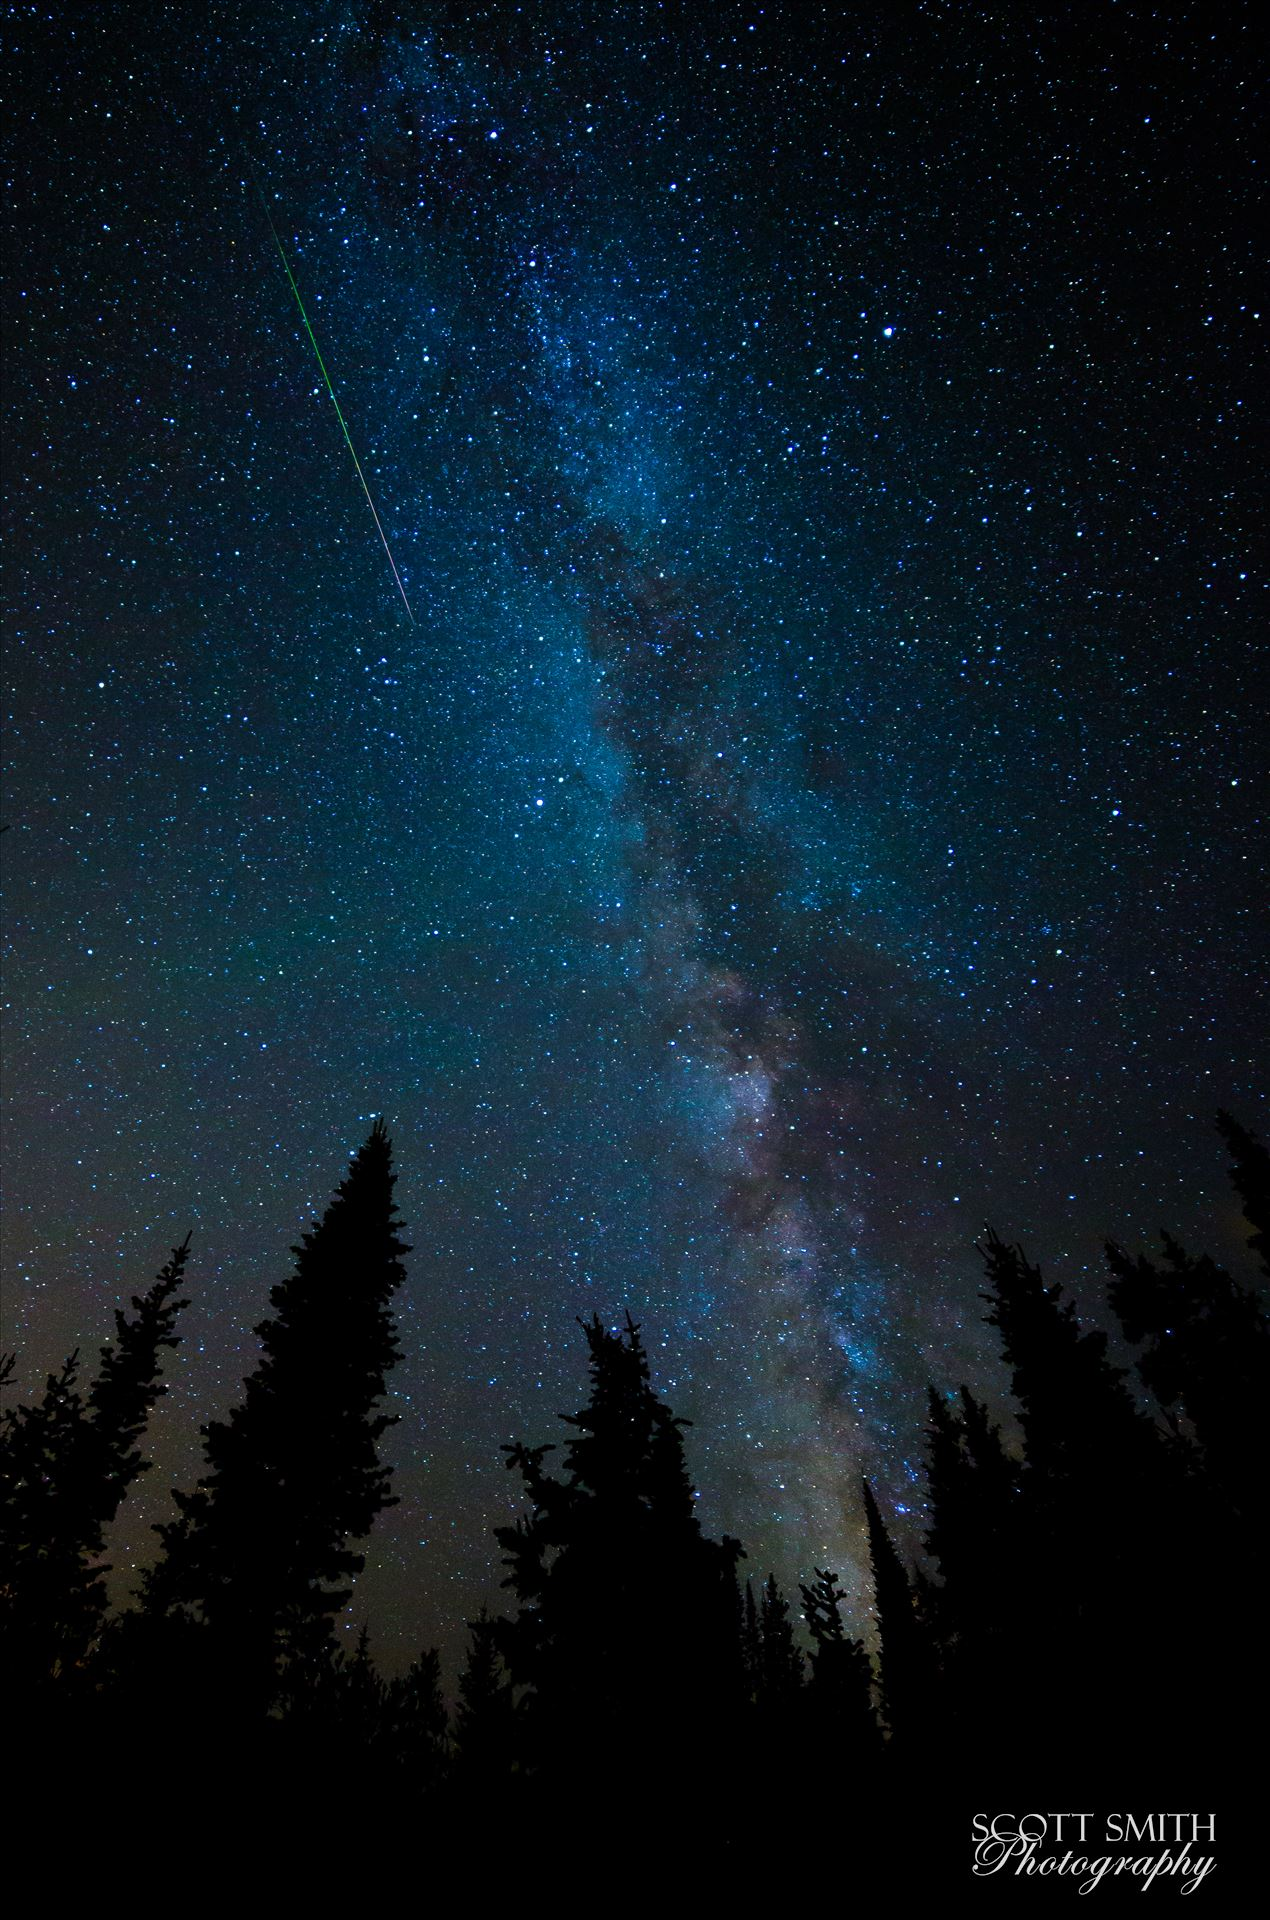 Milky Way and Meteorite from the PerseidsA lone meteorite streaks through the sky near the Milky Way, at the Brainard Lake State Recreation Area near Ward, Colorado.